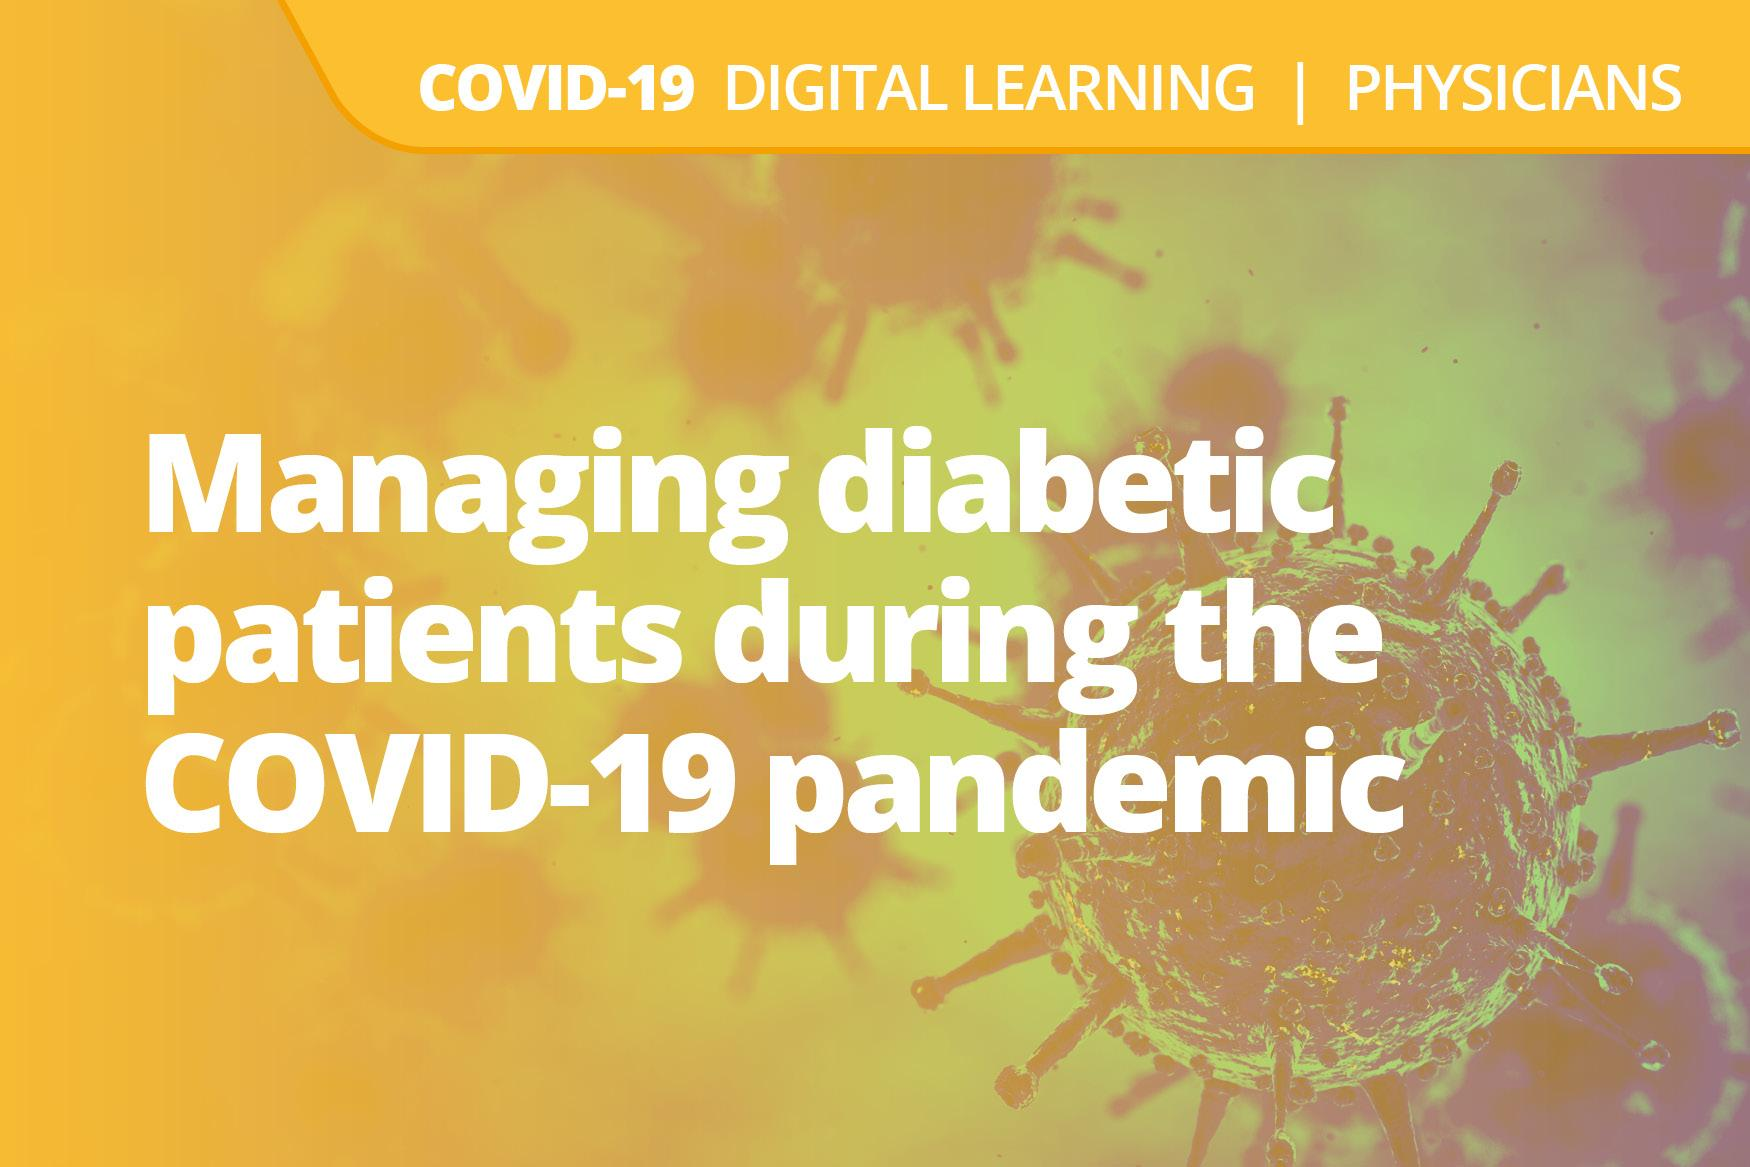 Managing diabetic patients during the COVID-19 pandemic